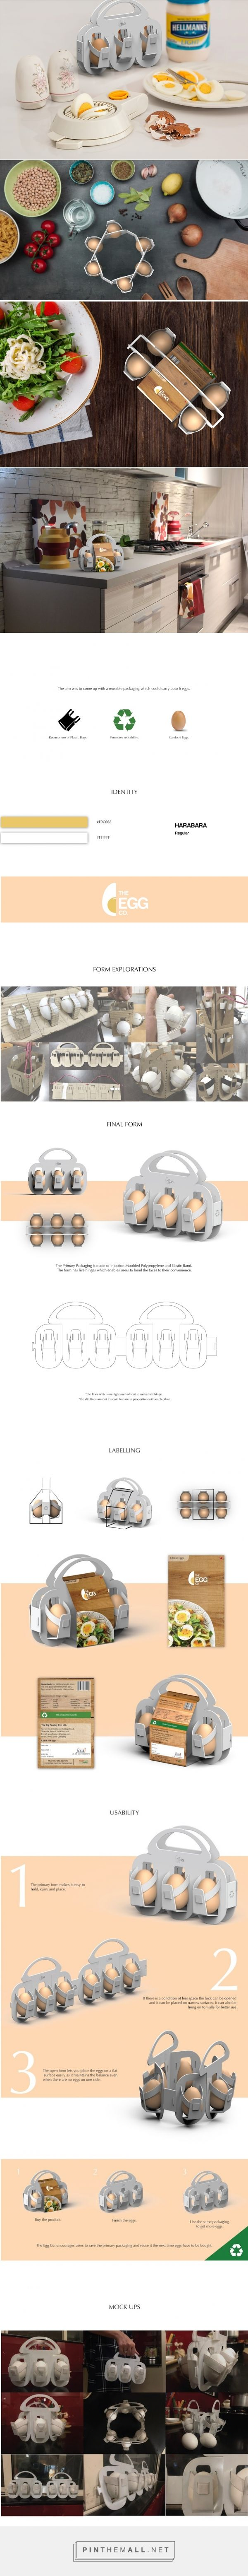 Reusable egg packaging design by Dhruv Anand (student project) - http://www.packagingoftheworld.com/2017/09/the-egg-co-student-project.html